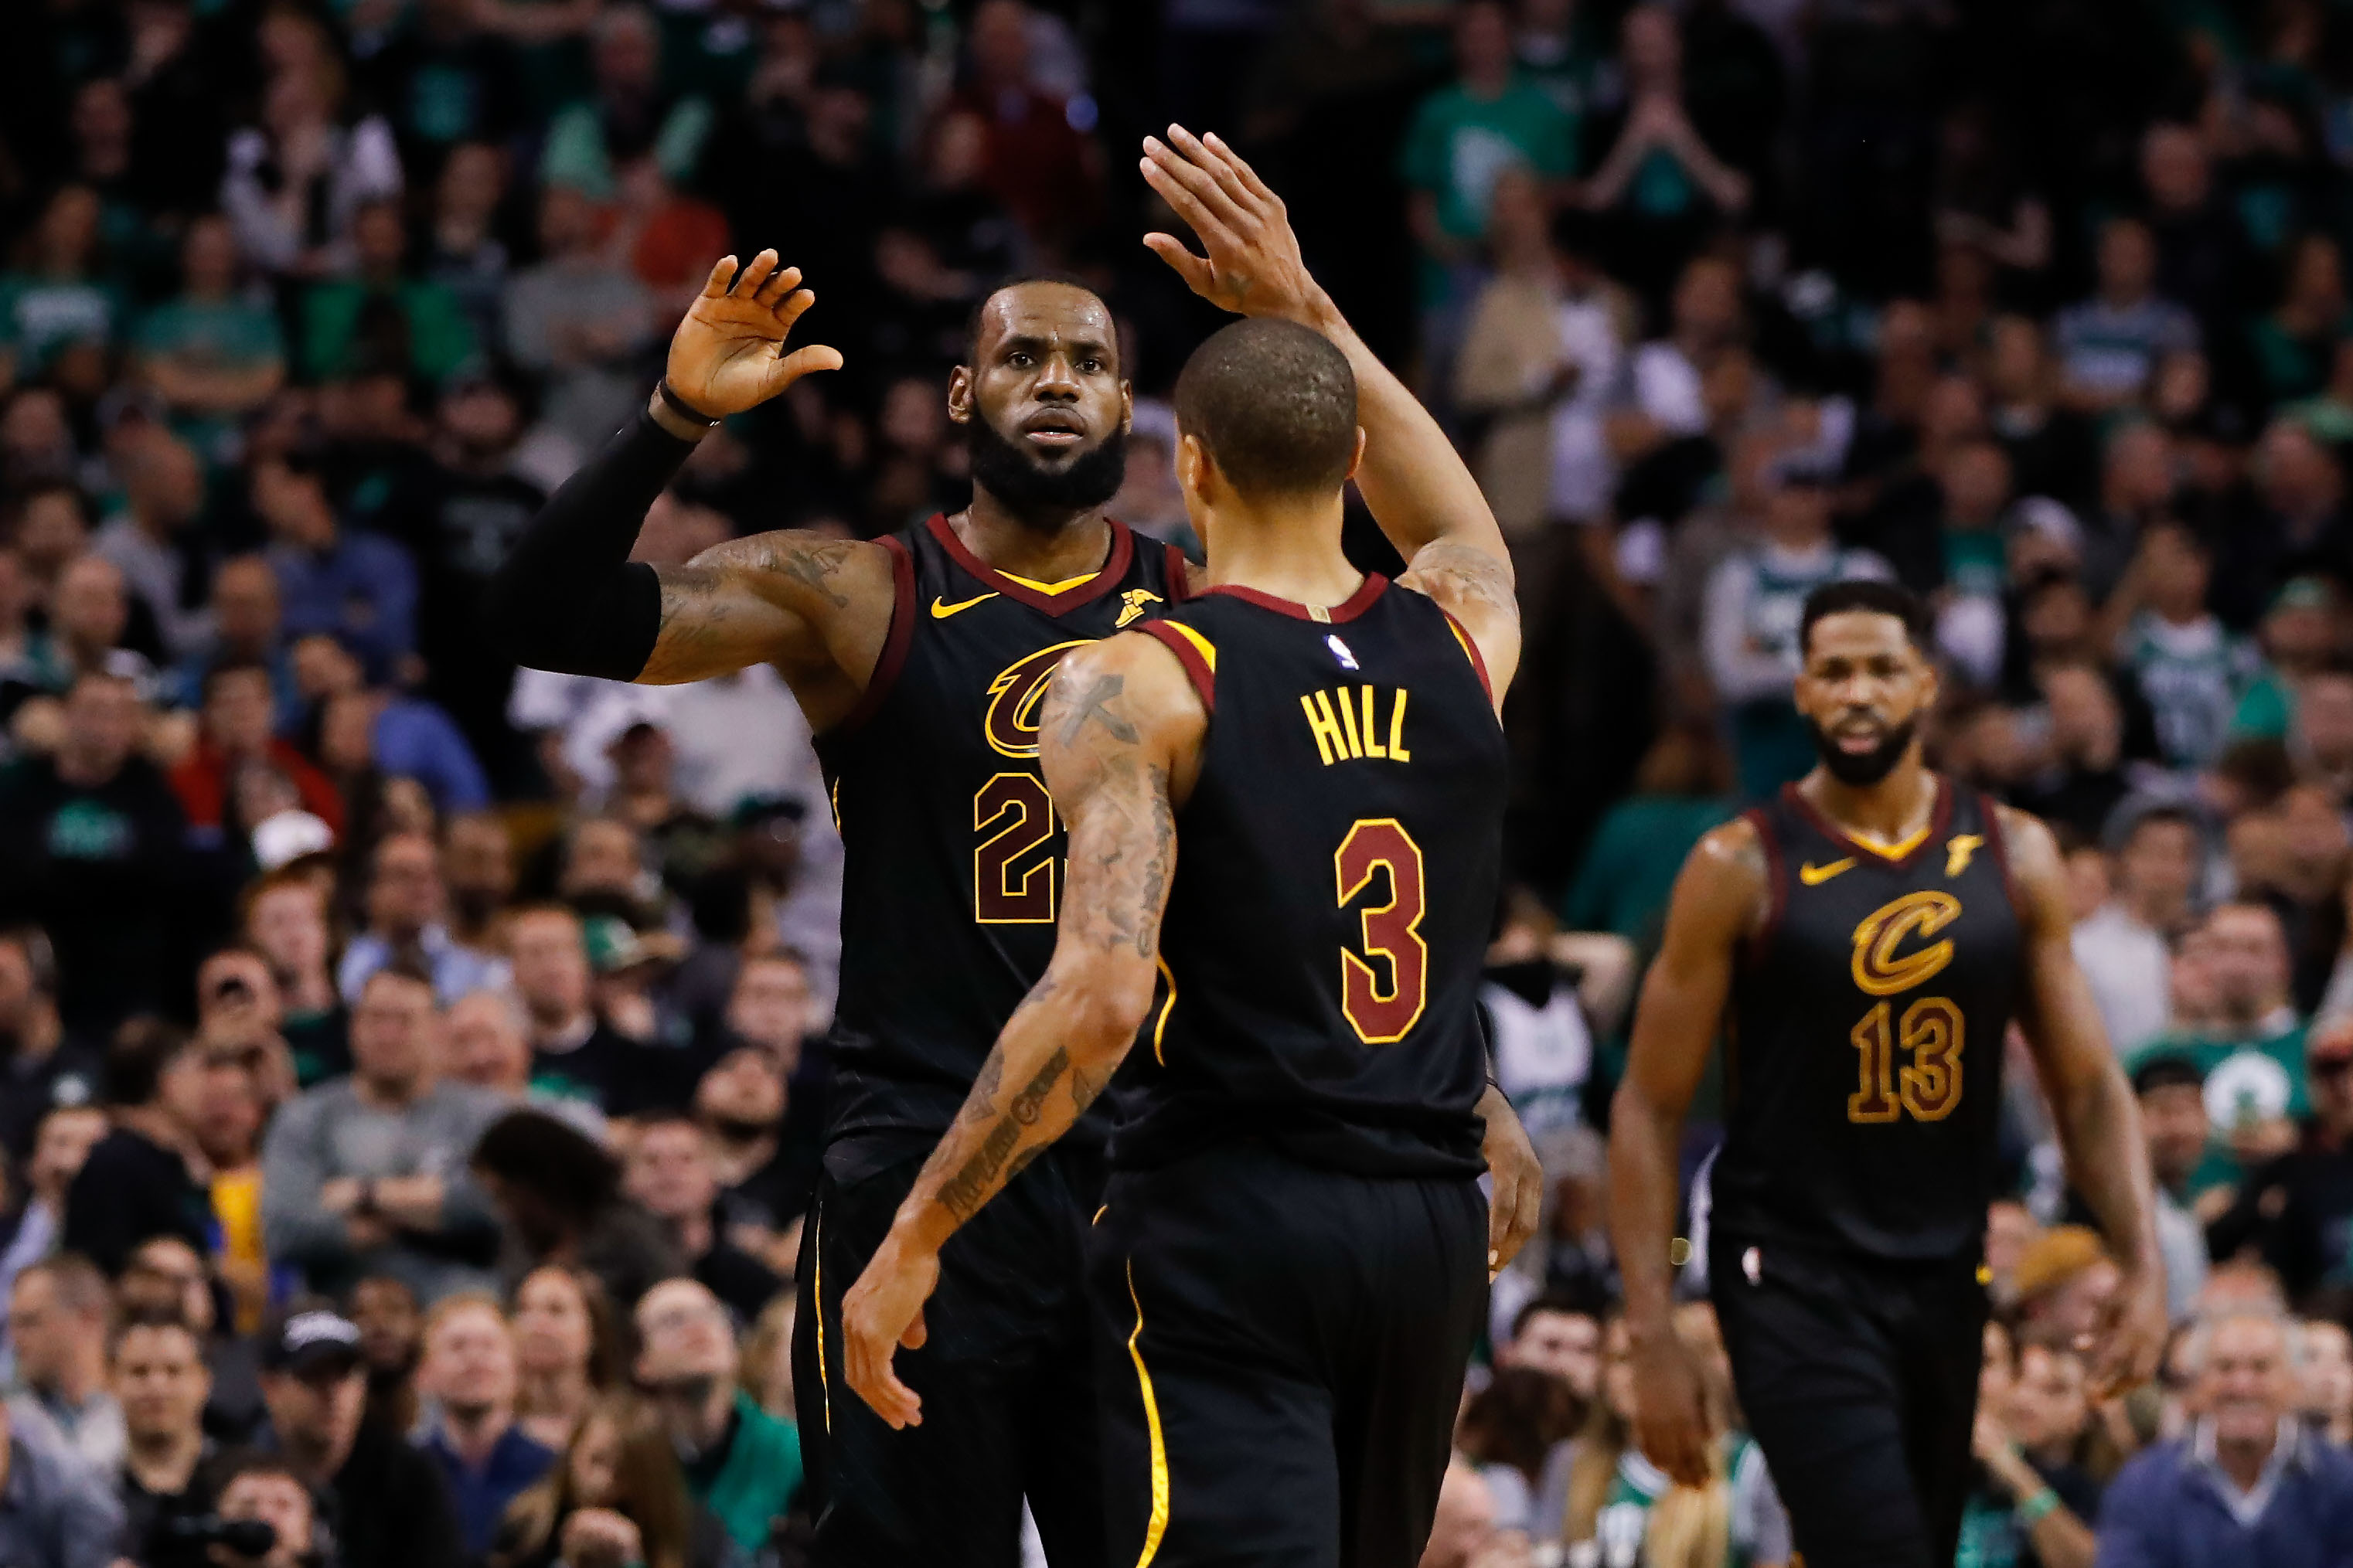 Cavaliers beat Celtics in Game 7 to advance to the NBA Finals